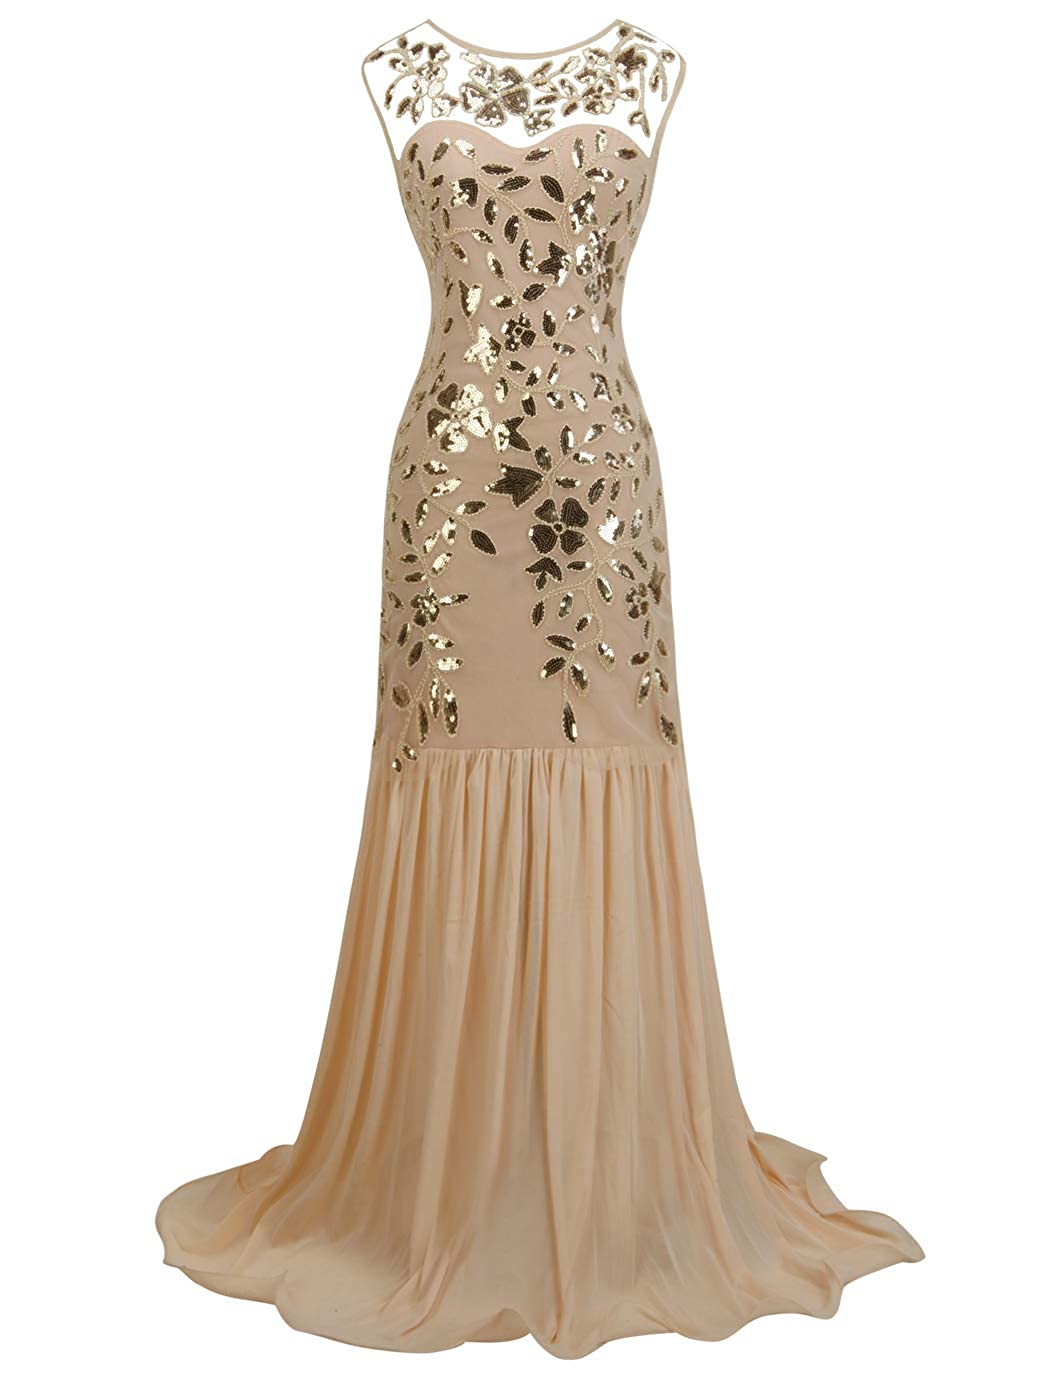 026champagne gold FAIRY COUPLE 1920s FloorLength VBack Sequined Embellished Prom Evening Dress D20S004